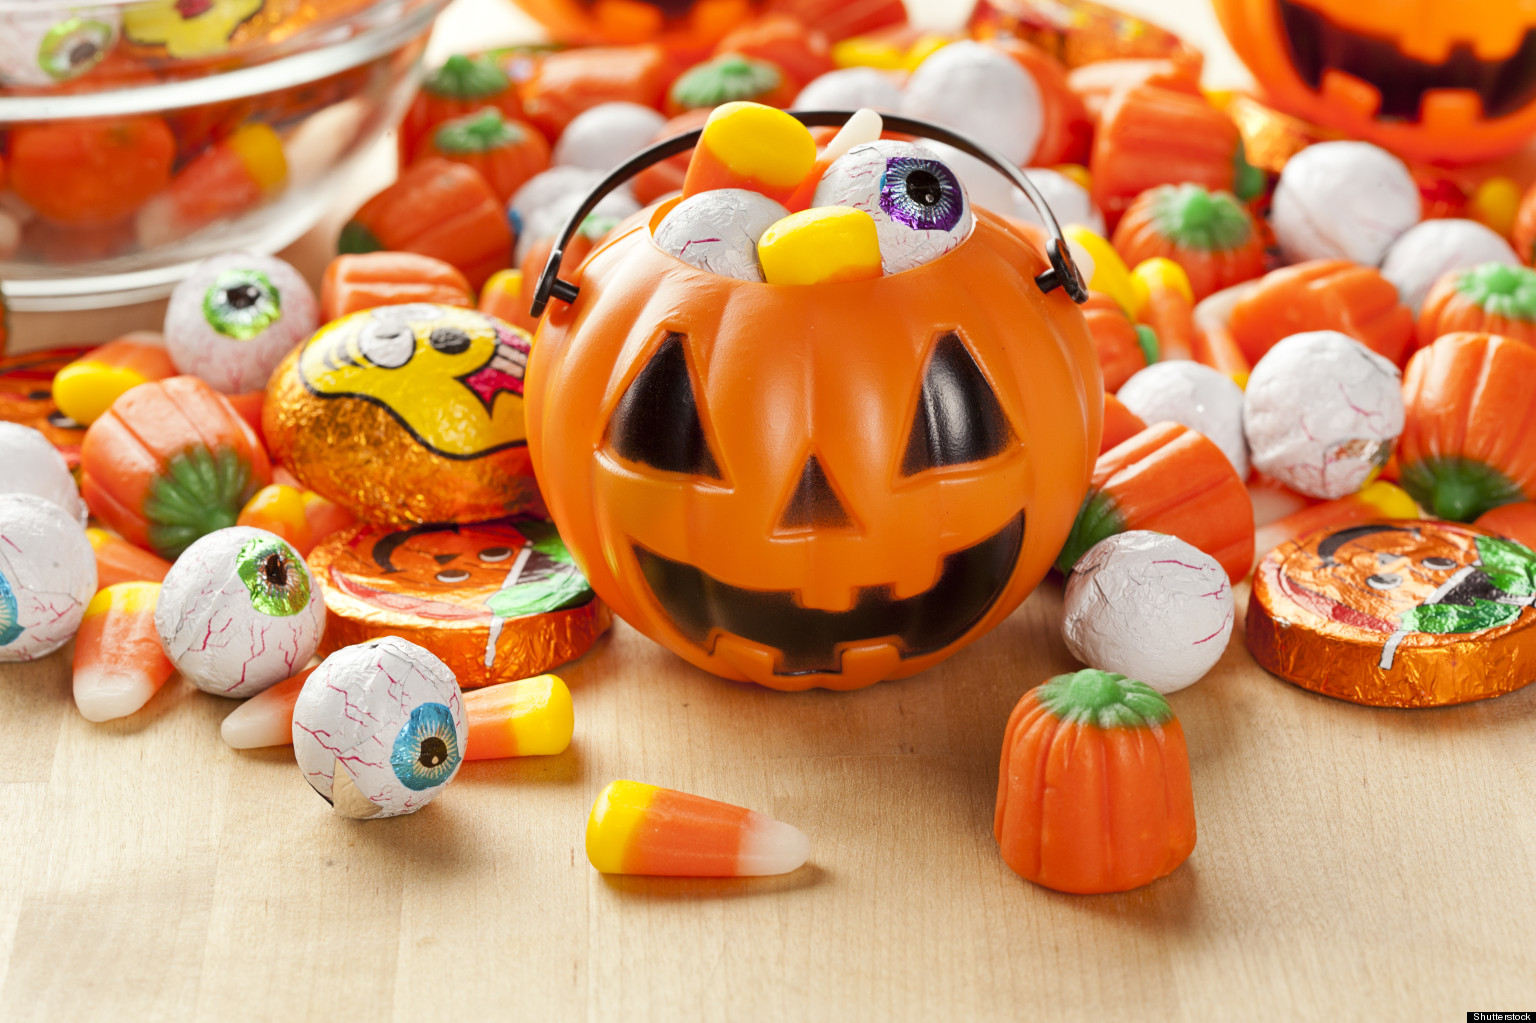 Gross Ingredients Lurking In Your Halloween Candy | HuffPost